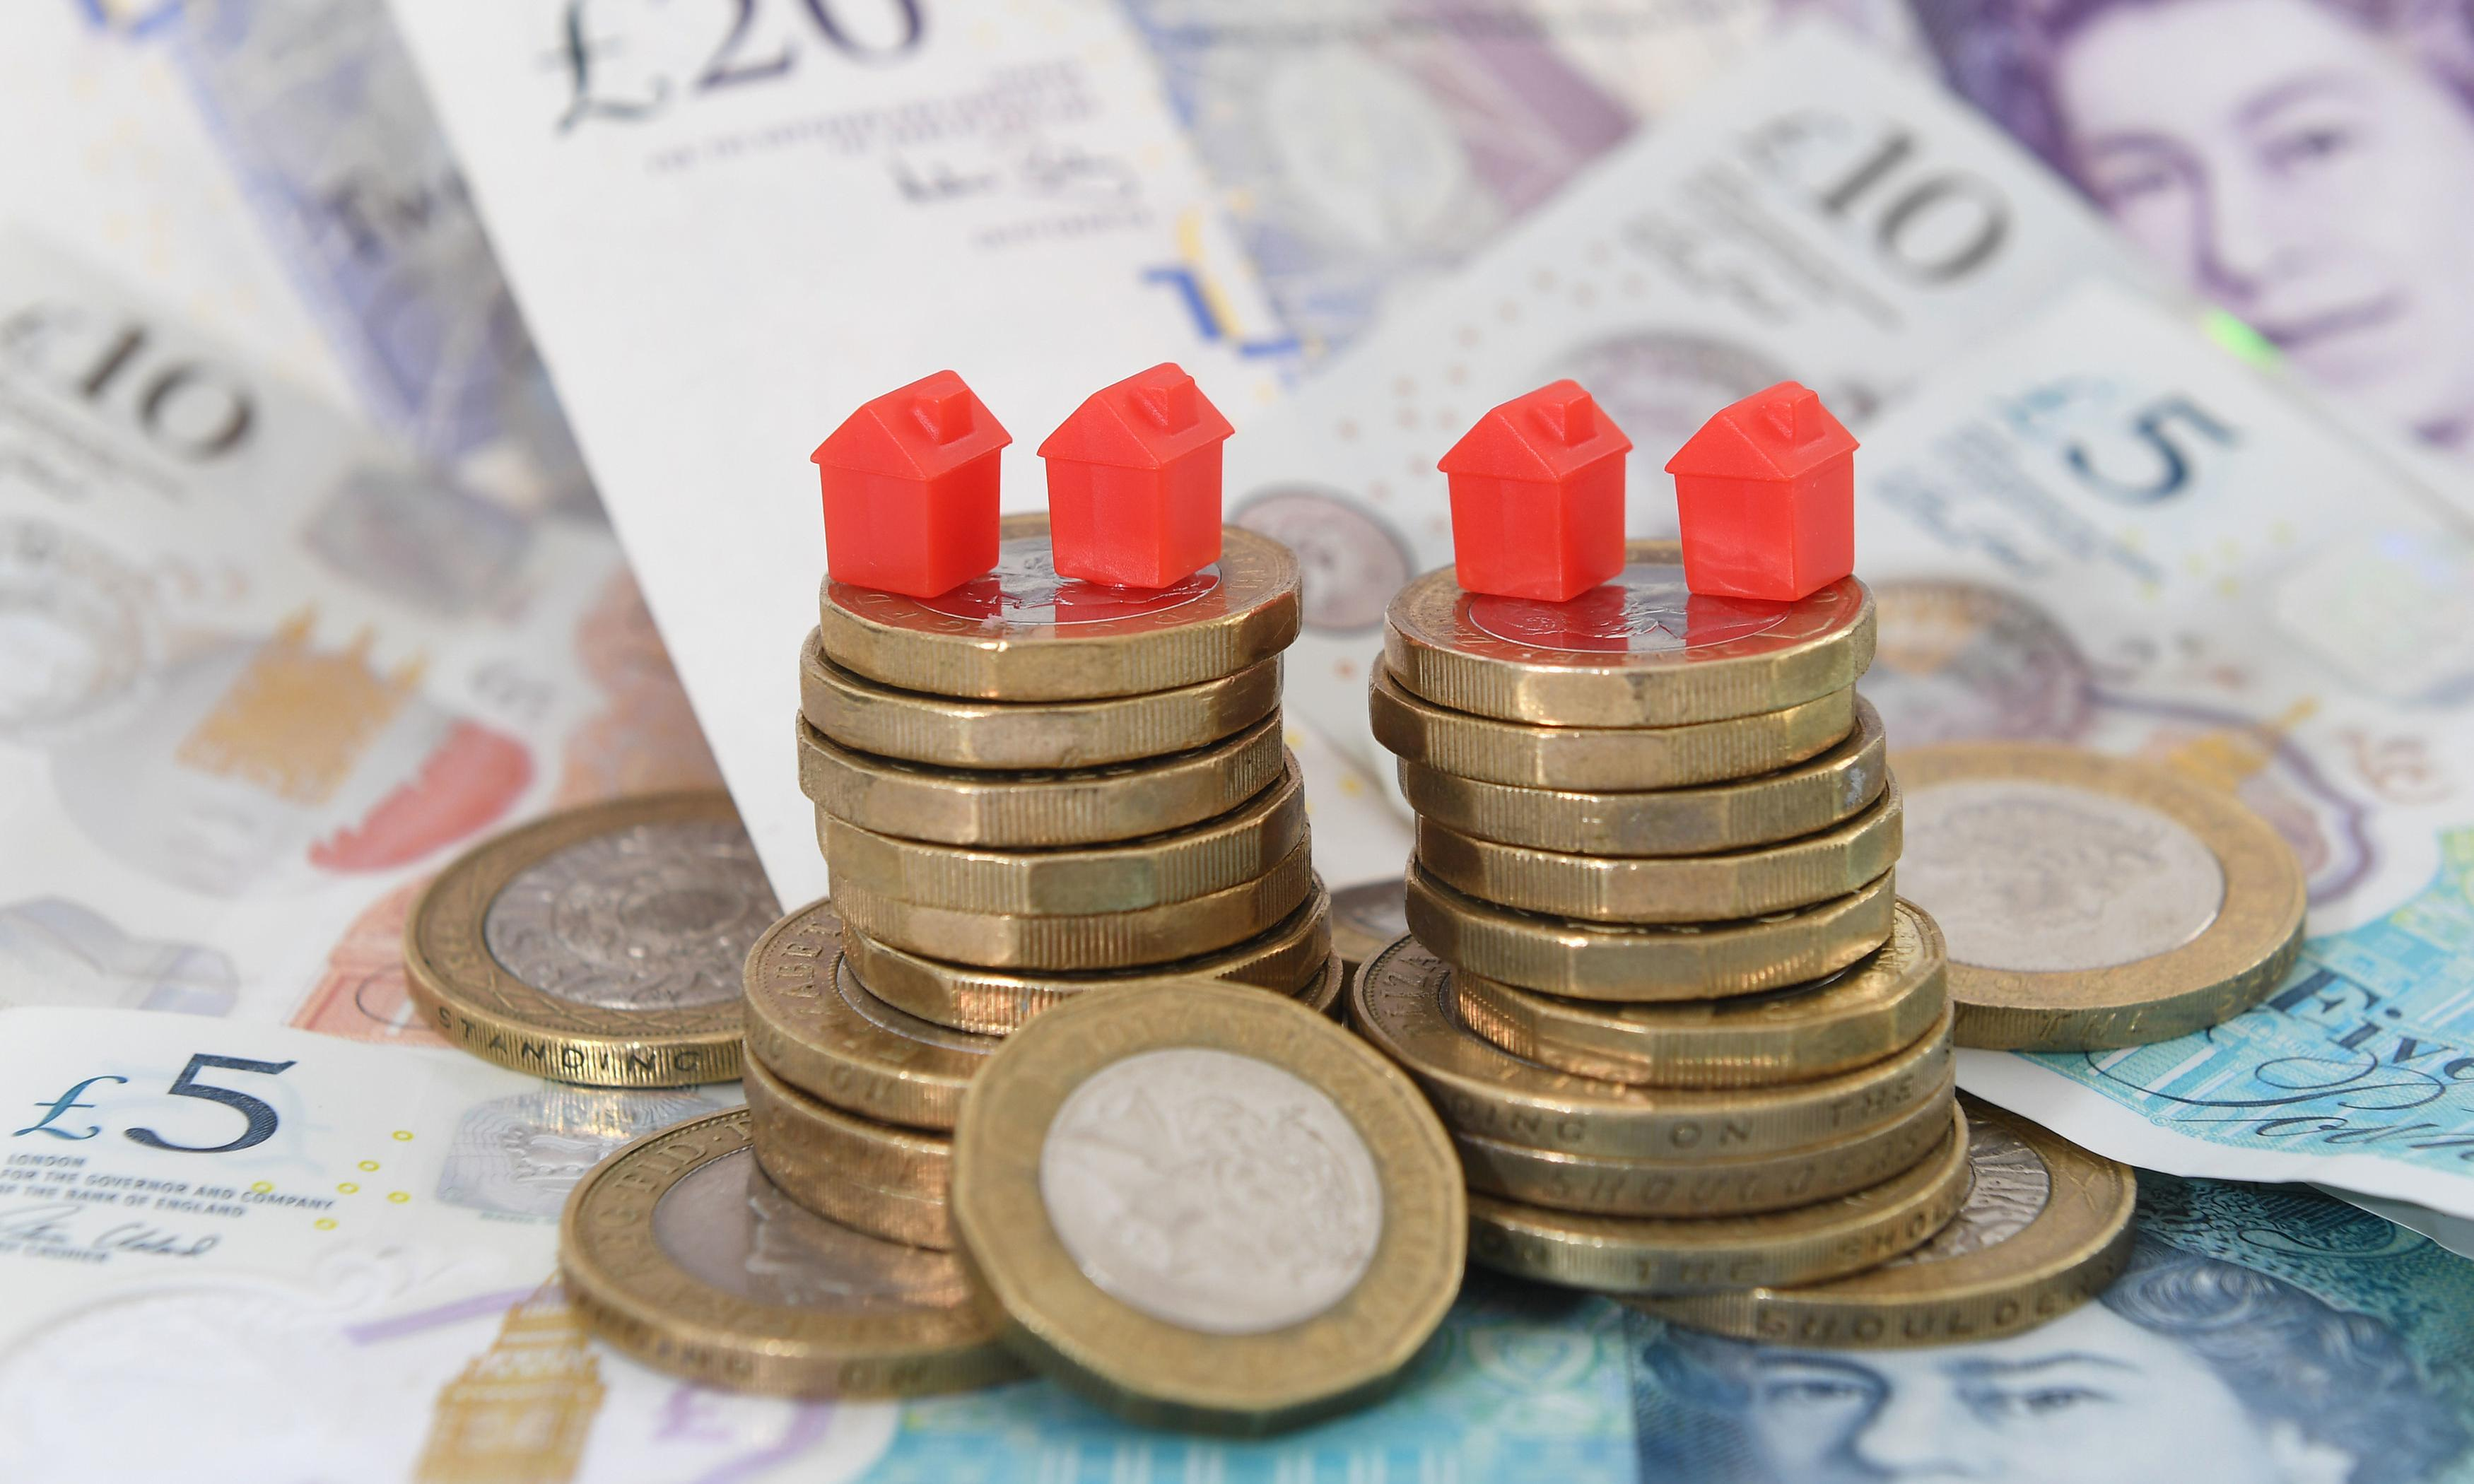 UK living standards hit by rising prices and weak wage growth